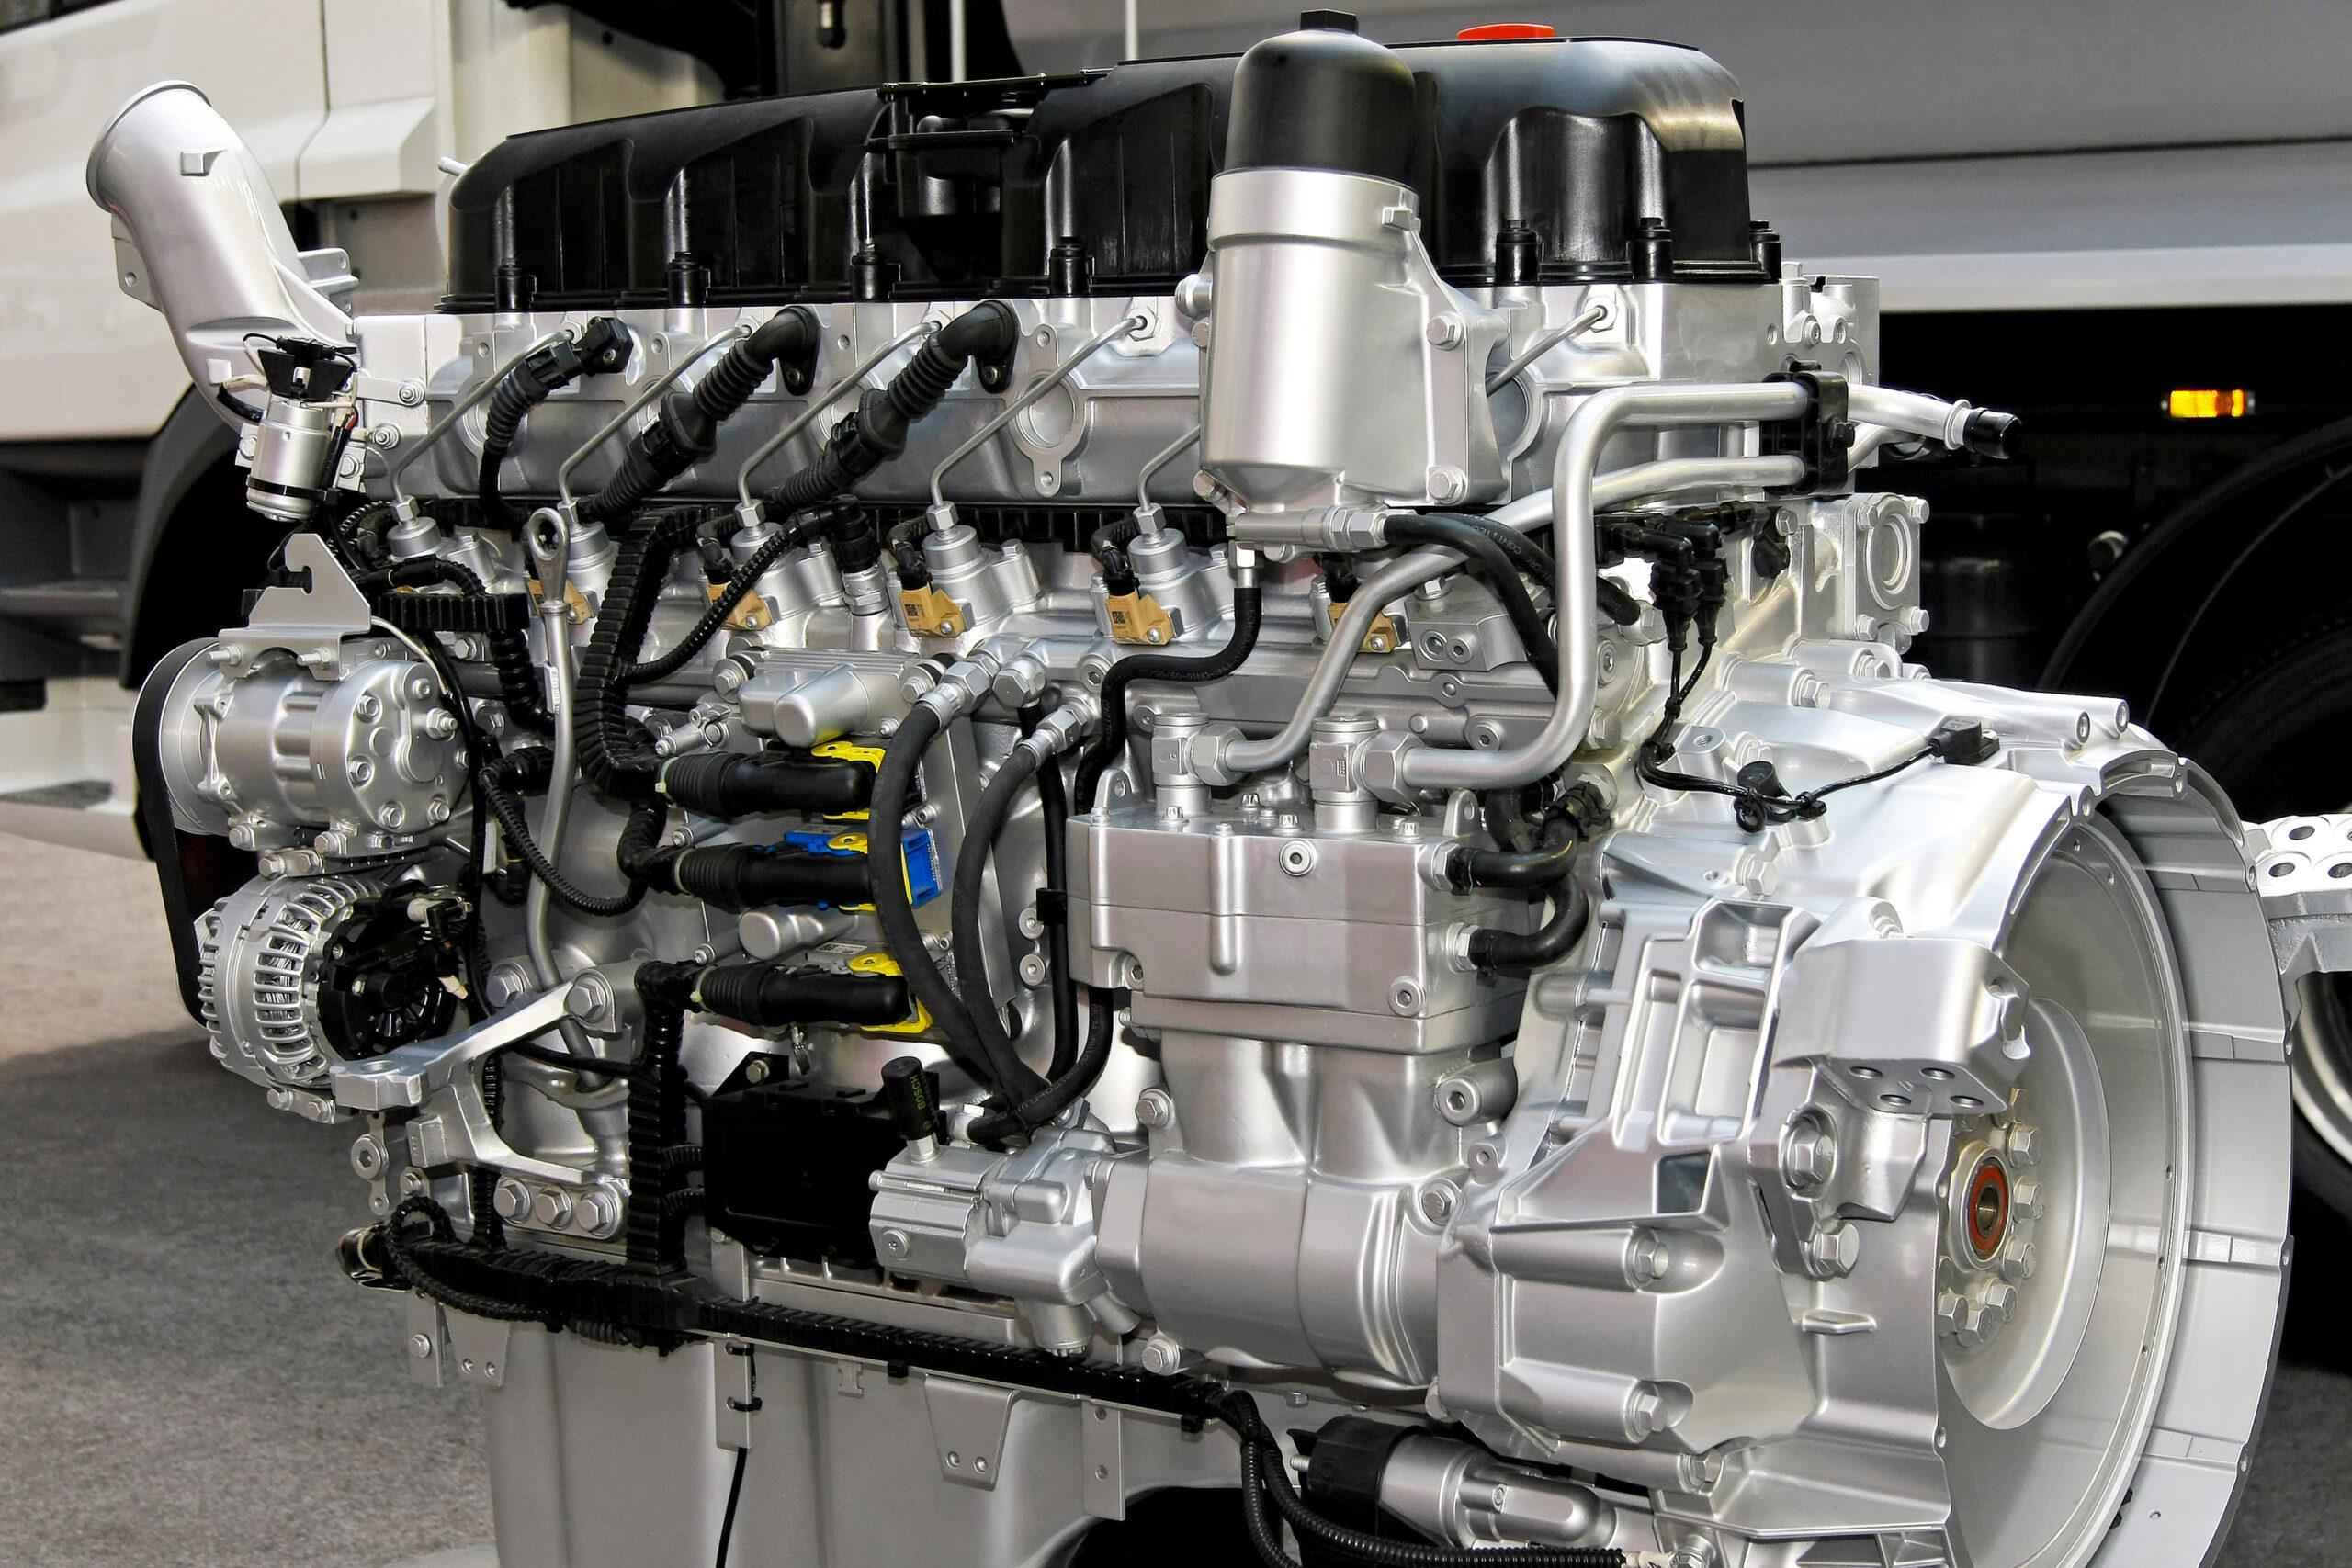 Gears and Machined Components for Diesel Engines